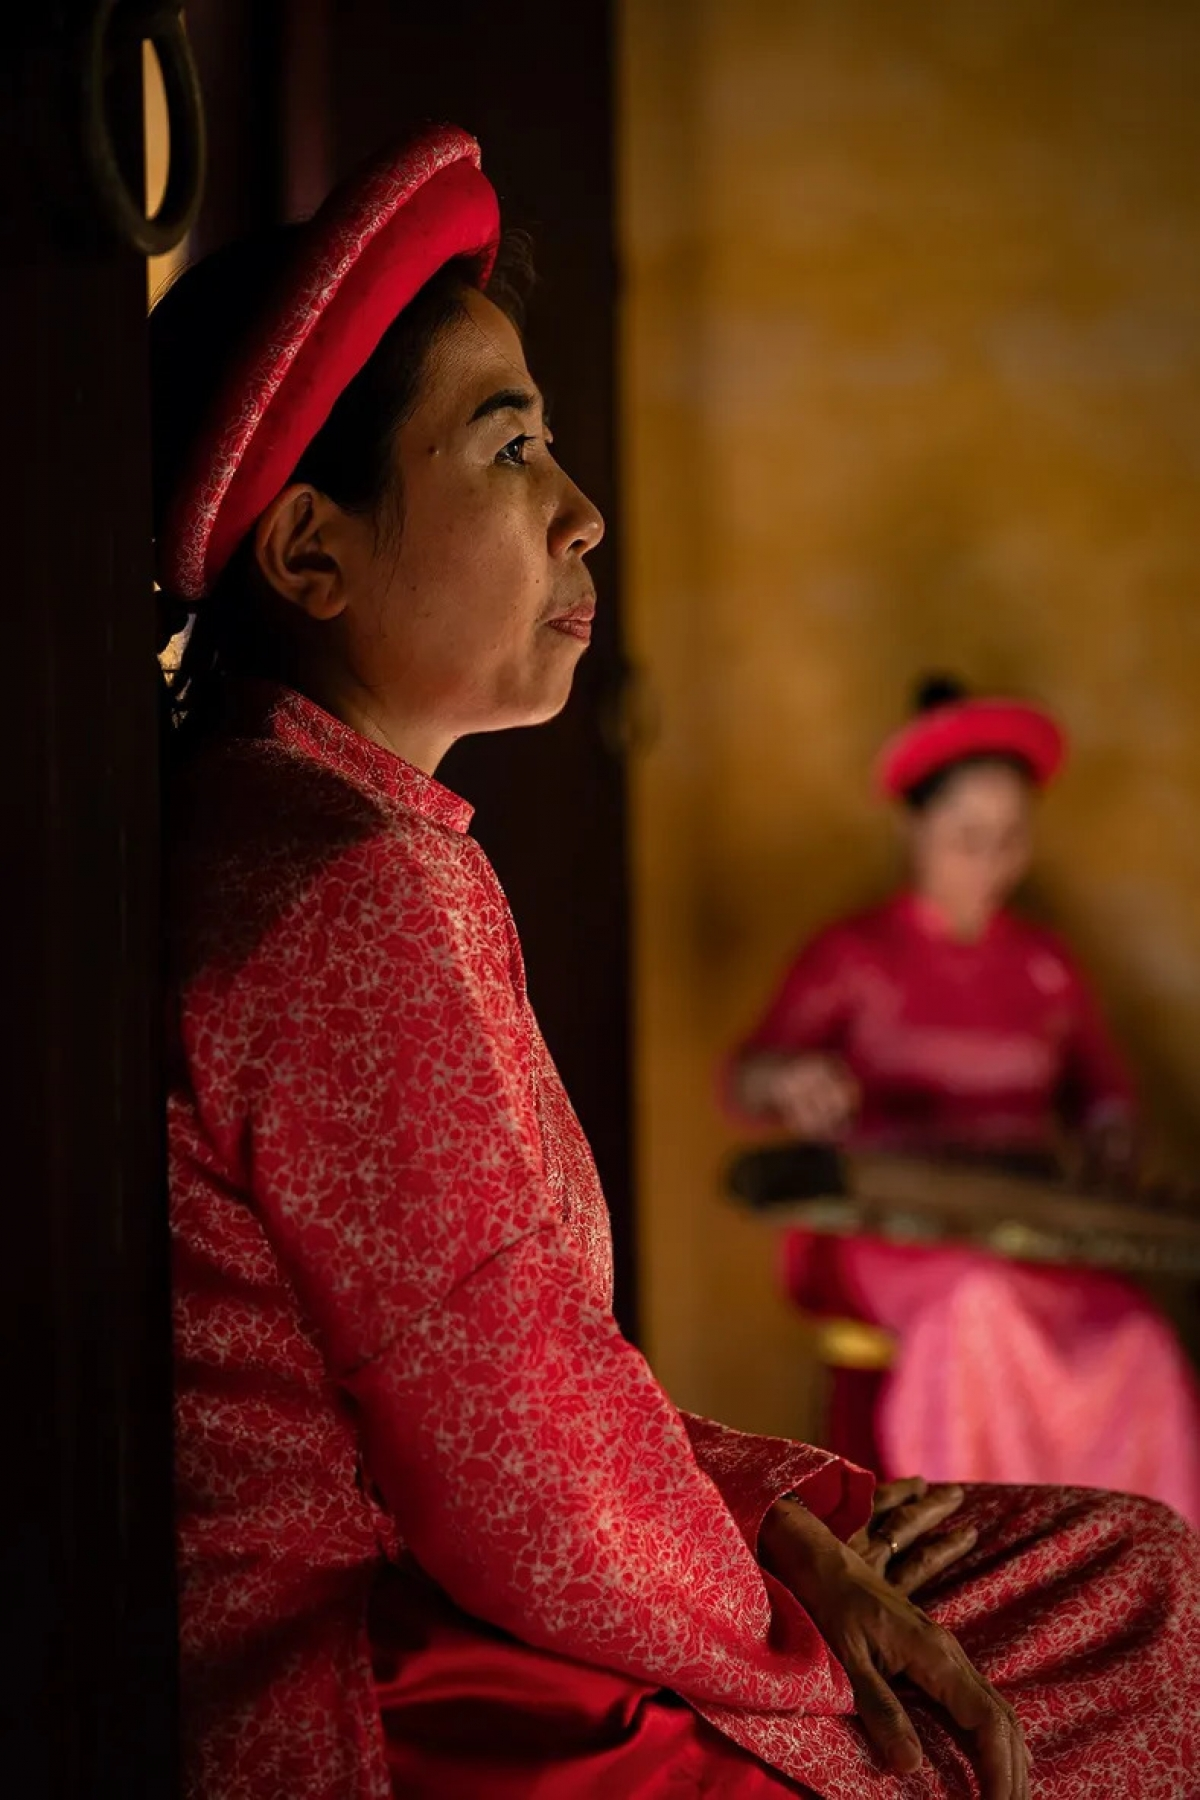 Vietnamese woman in traditional clothing in the Imperial City of Hue by Walter Monticelli.